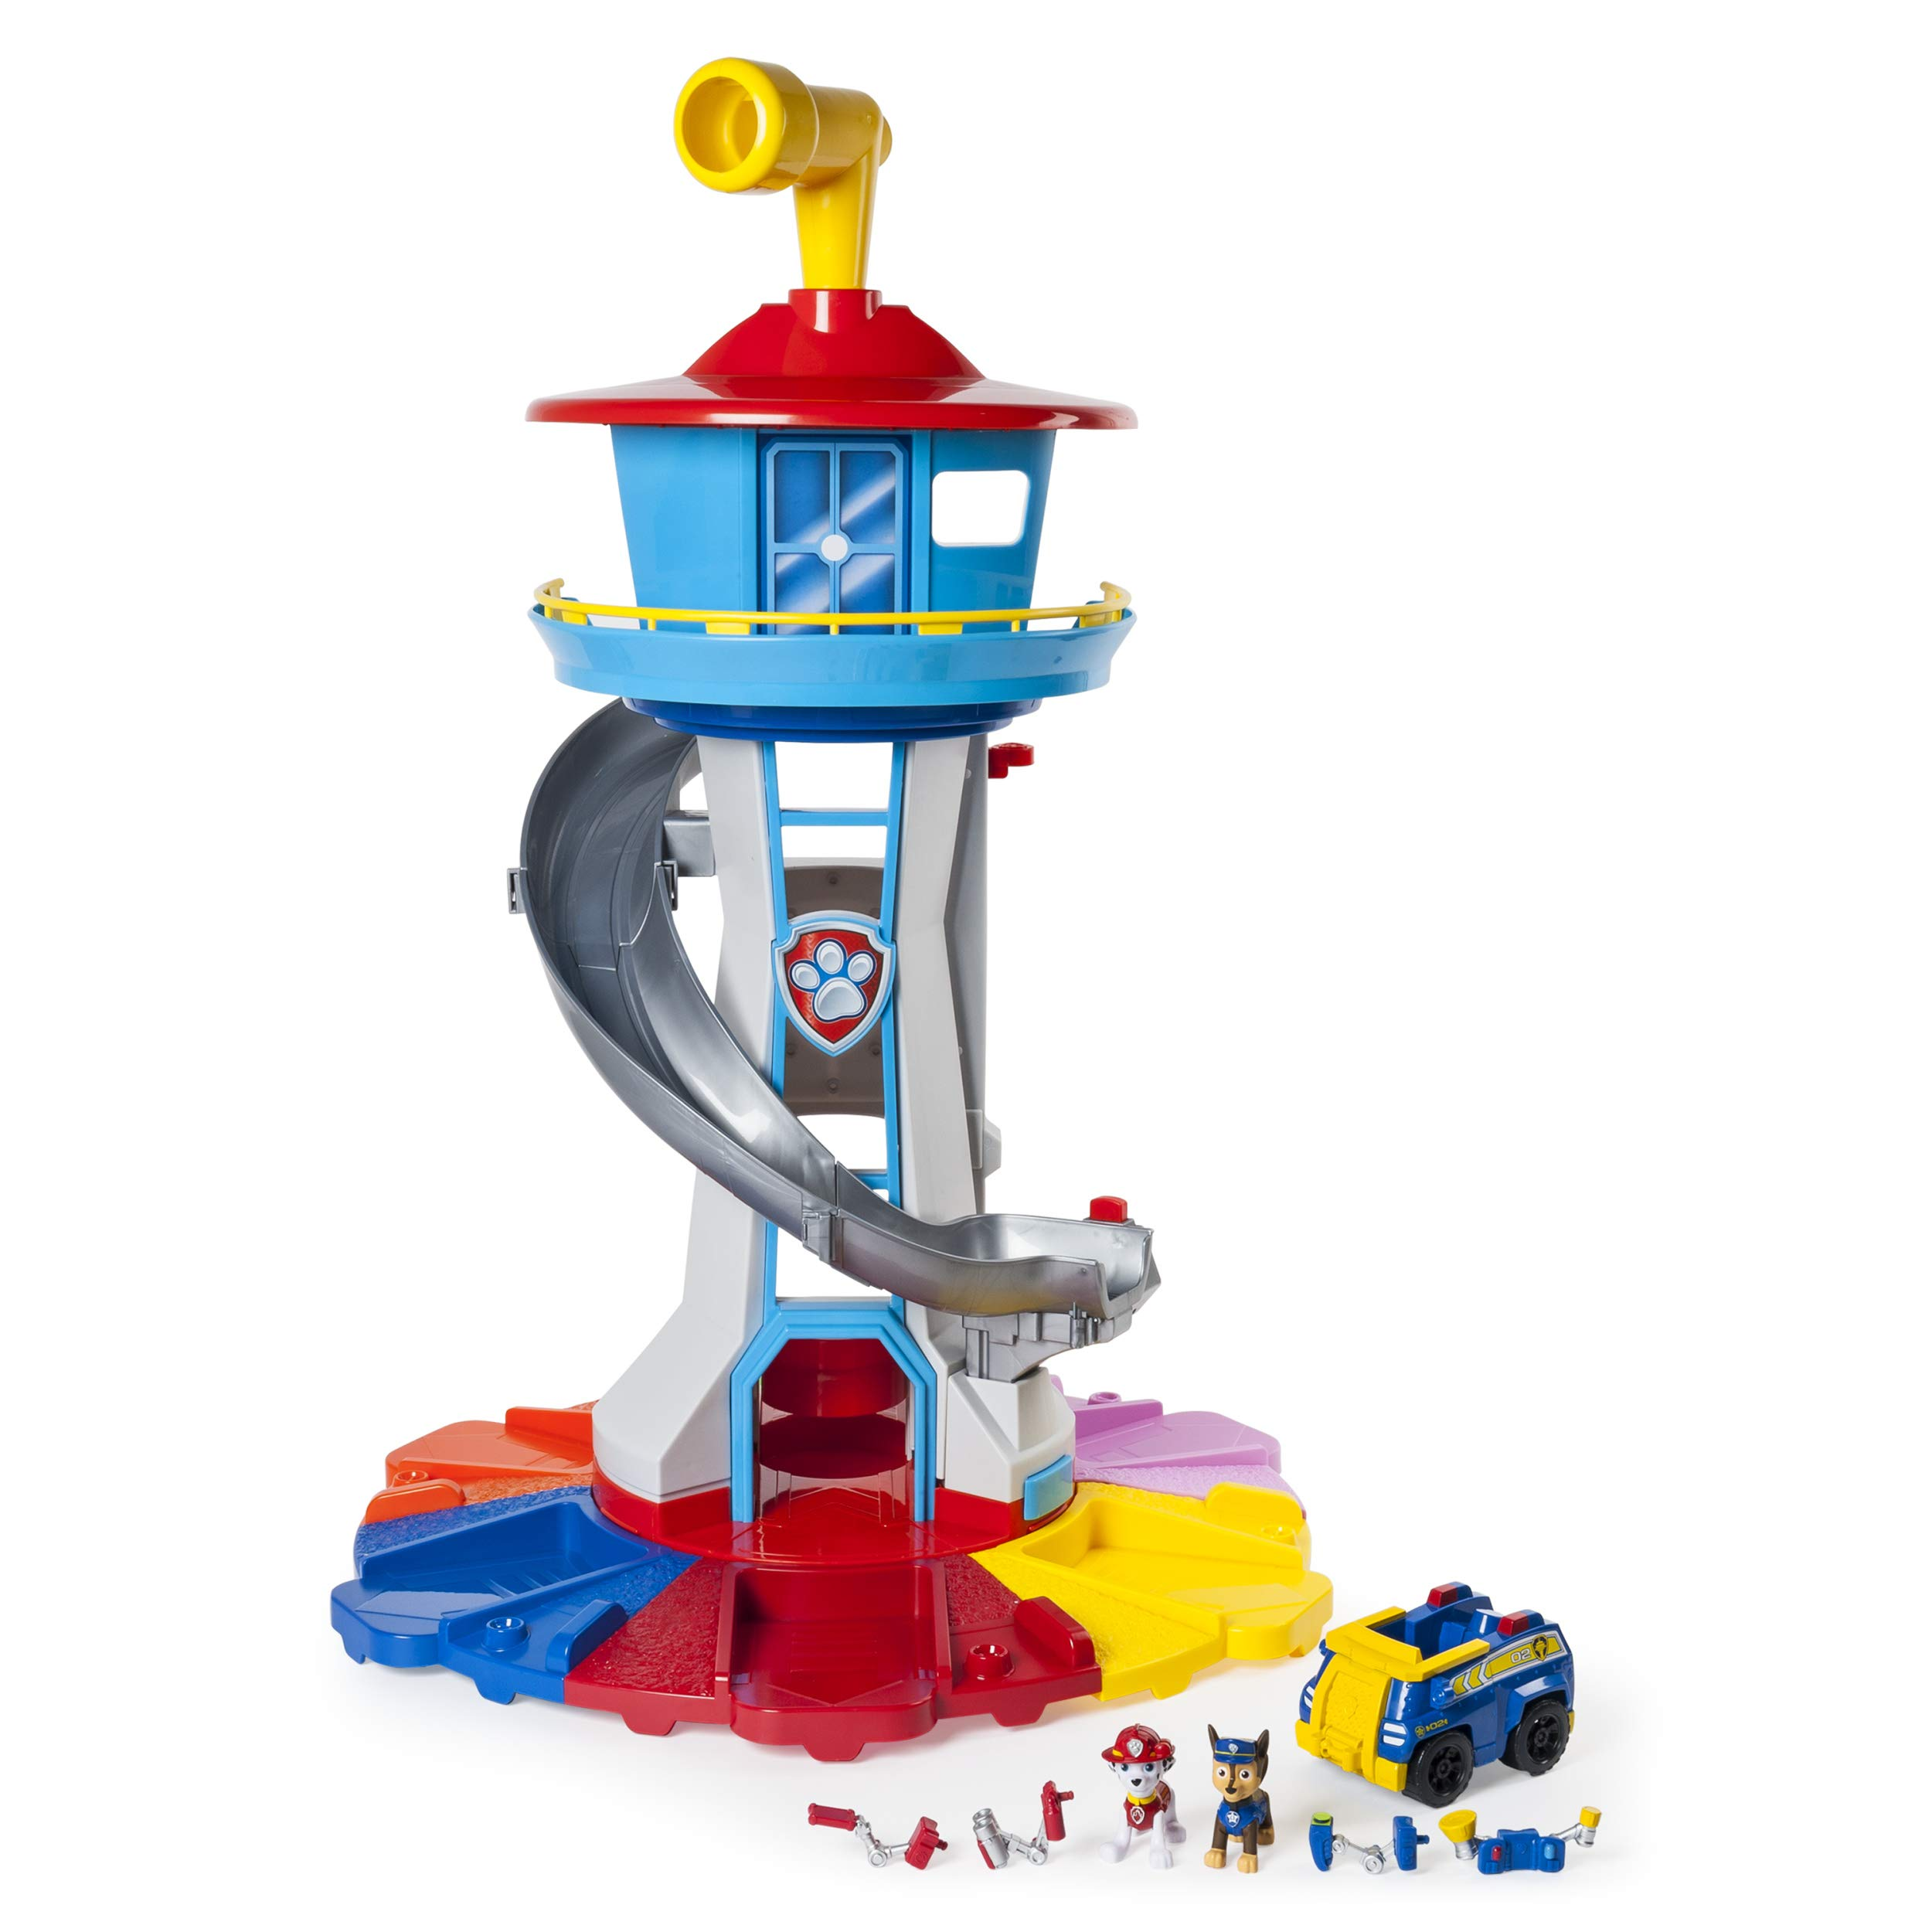 PAW Patrol My Size Lookout Tower with Exclusive Vehicle, Rotating Periscope & Lights & Sounds by Paw Patrol